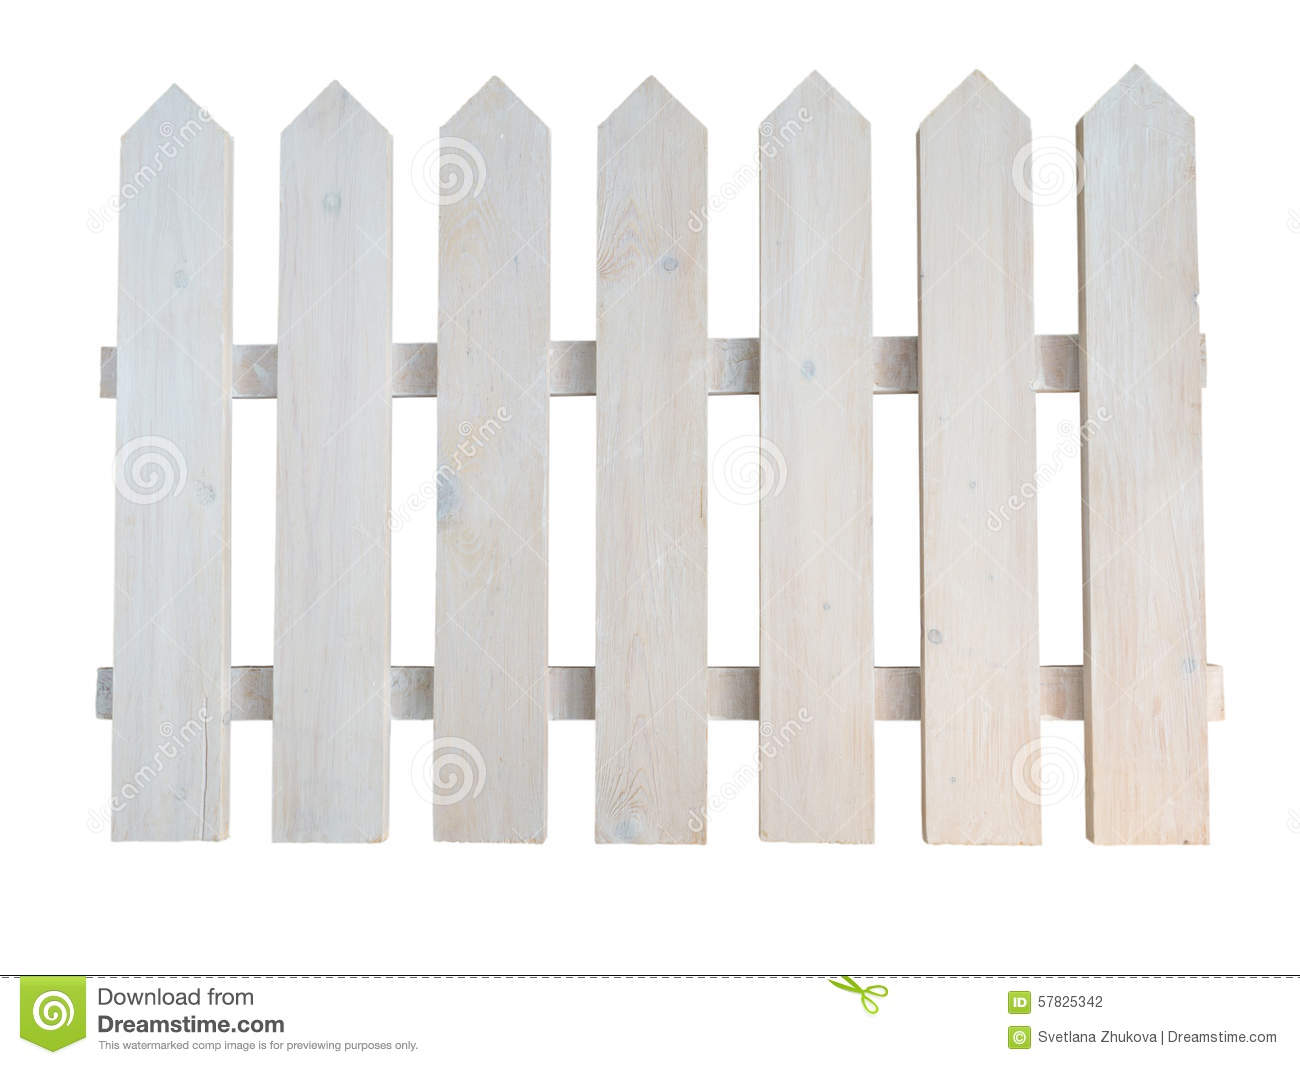 Barri re d corative peinte rugueuse en bois blanche de jardin de cottage photo stock image for Barriere de jardin bois